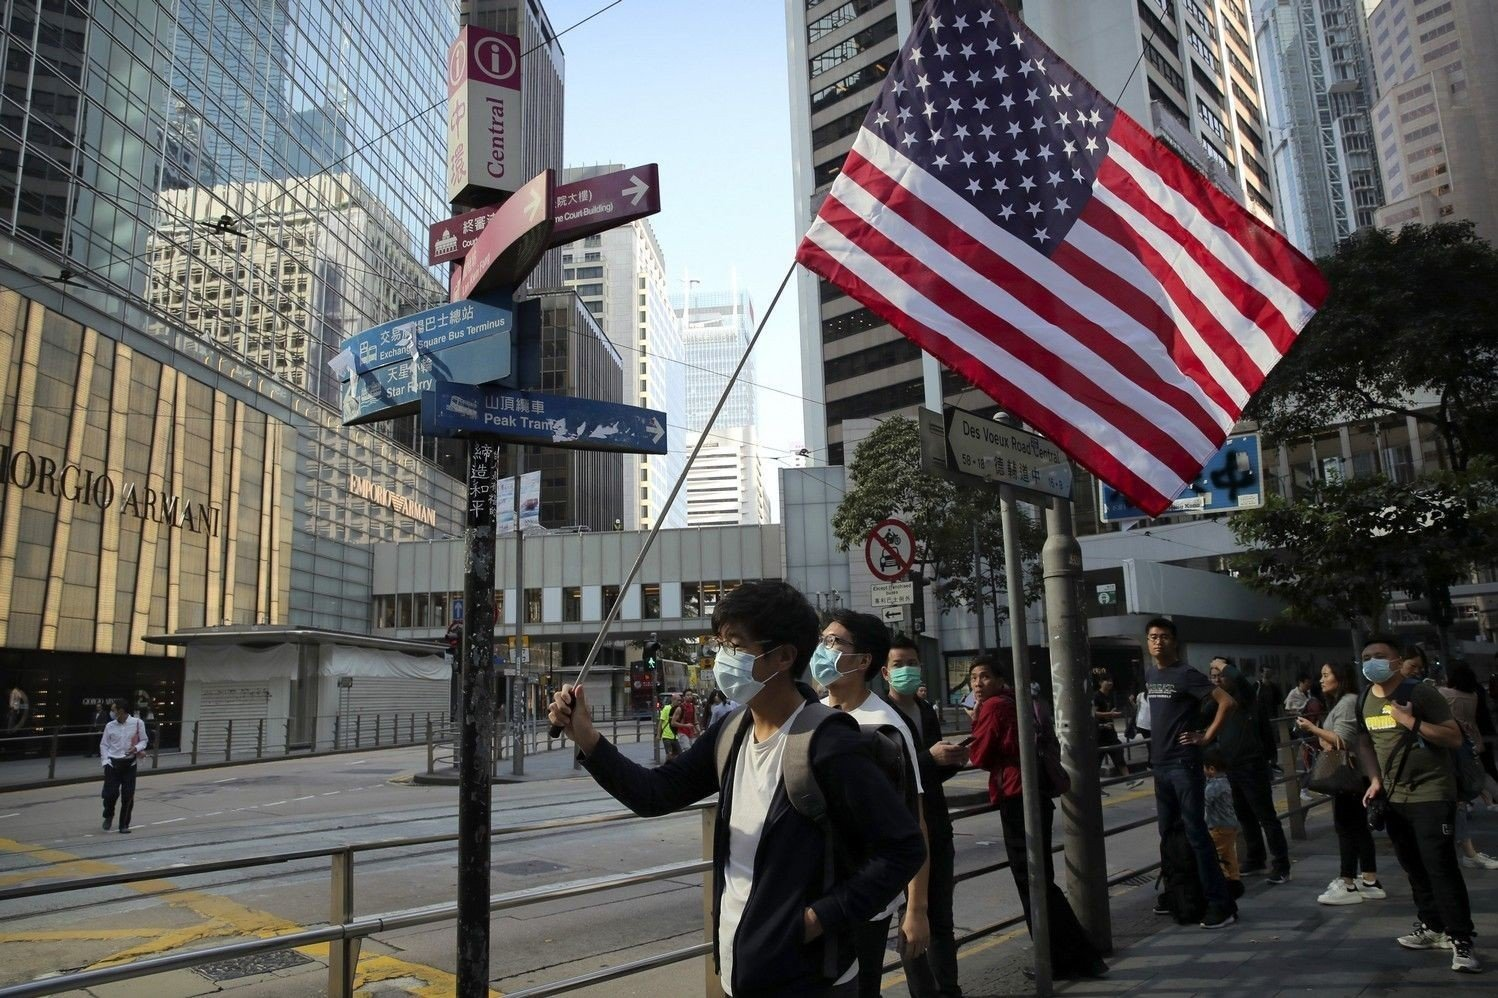 Hong Kong Protests A protester holds an American flag during a demonstration in the financial district in Hong Kong, Wednesday, Nov. 20, 2019. Hong Kong schools reopened Wednesday after a six-day shutdown but students and commuters faced transit disruptions as the last protesters remained holed up on a university campus.